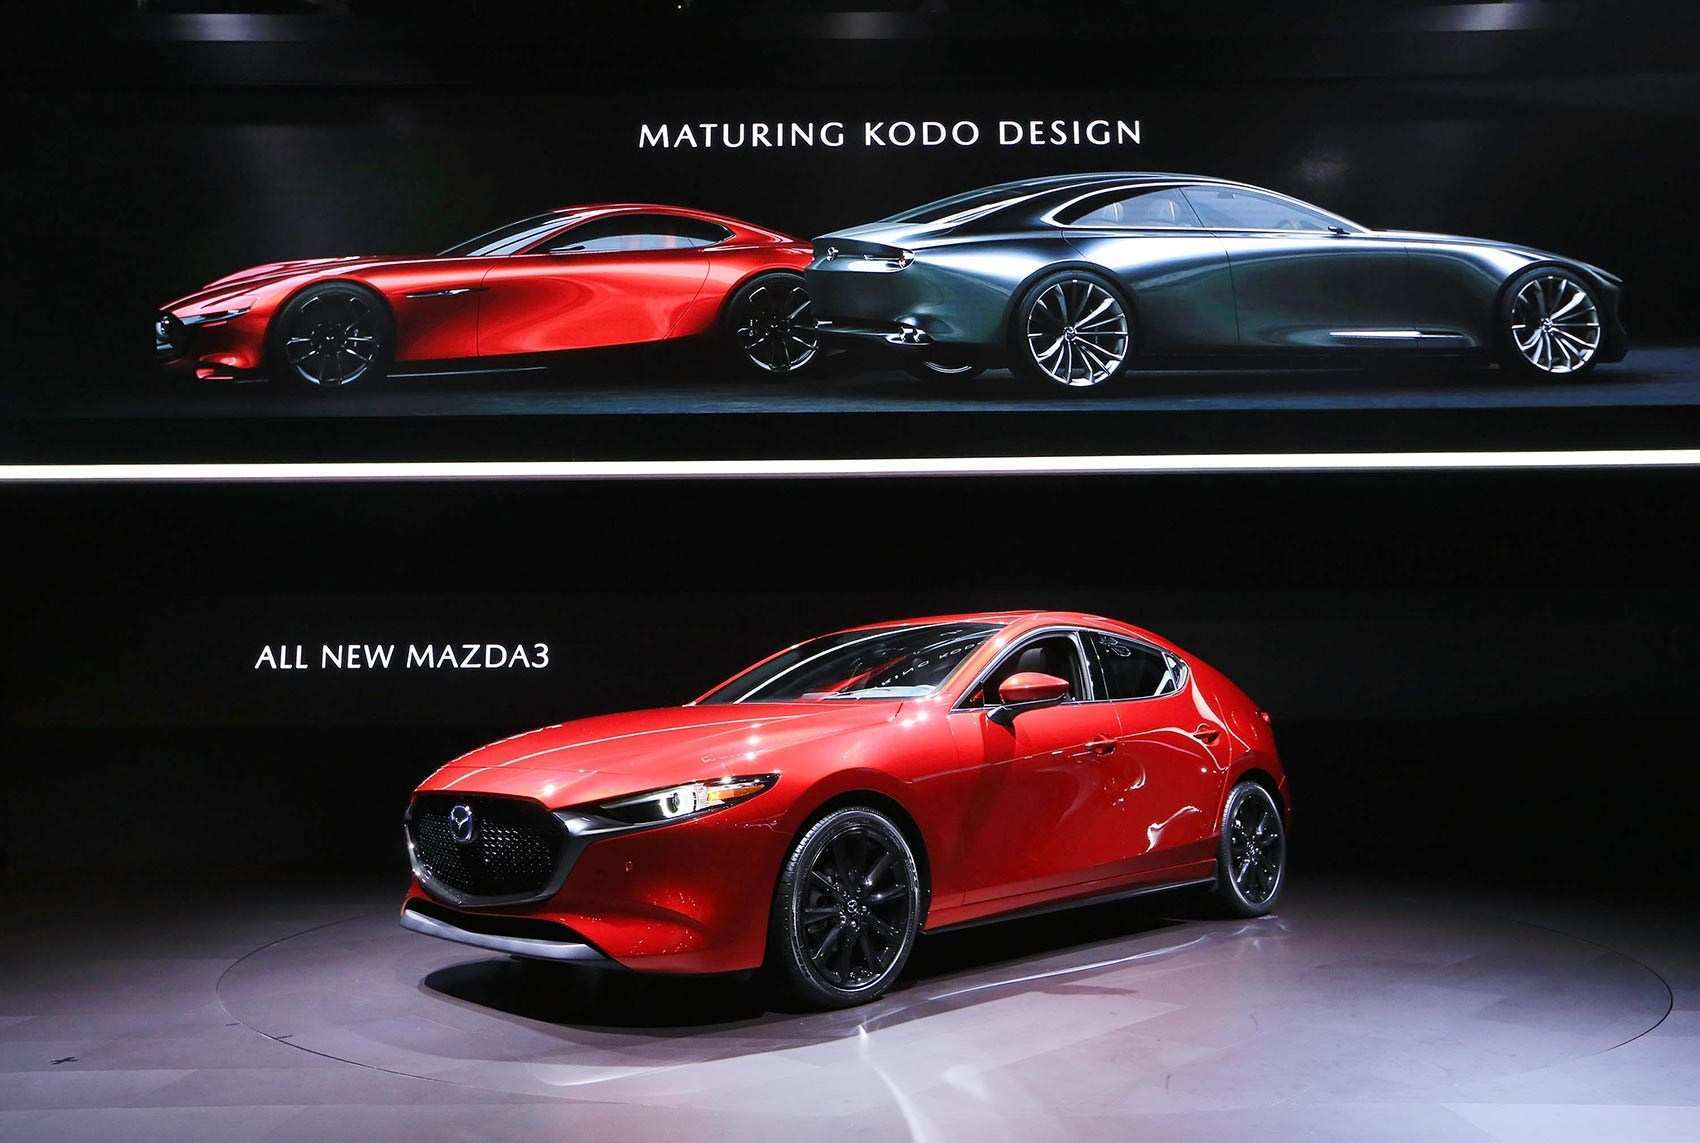 66 Great New Mazda 3 2019 Official Spesification Picture for New Mazda 3 2019 Official Spesification